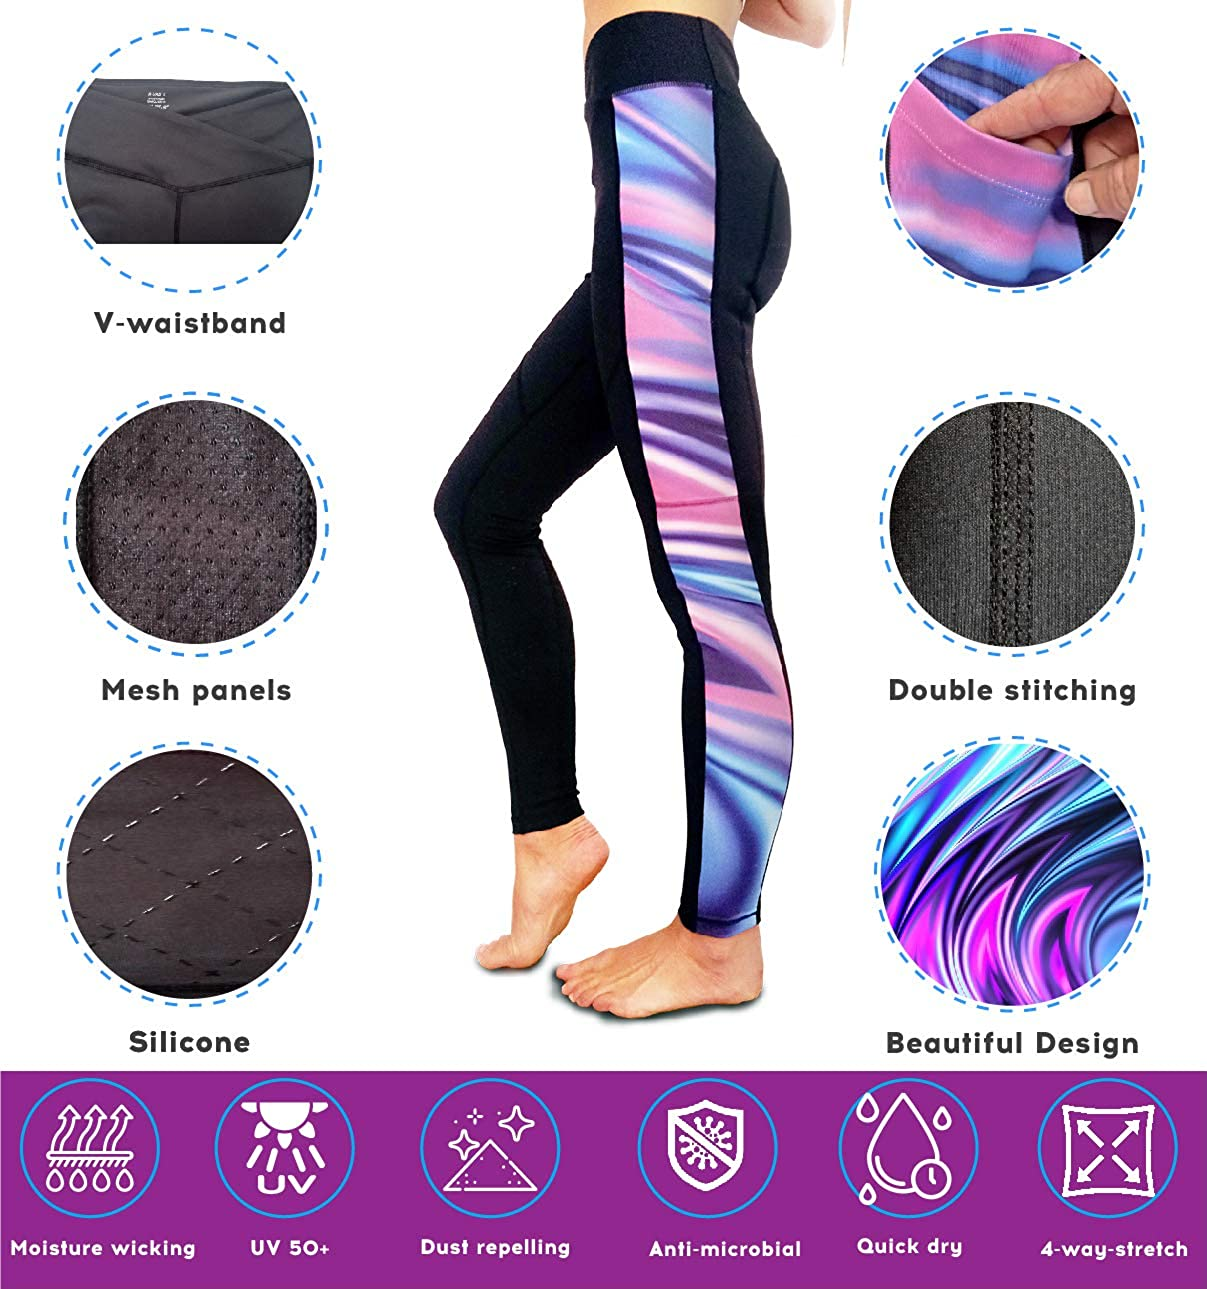 Pockets and Mesh Wild Scrumpy Horse Riding Jodhpur Tights with Silicone